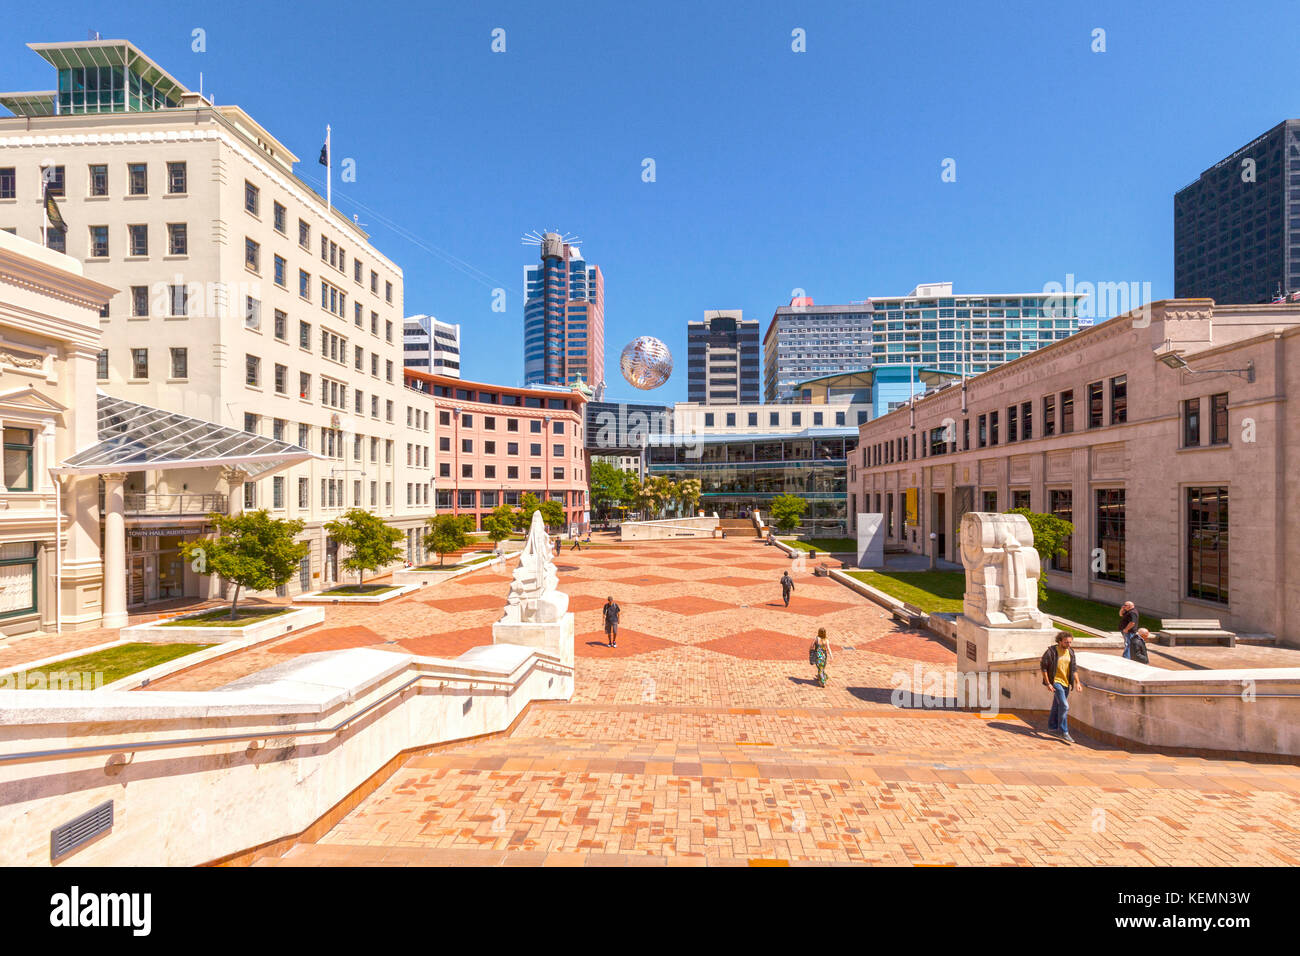 View of Civic Square, Wellington, New Zealand. - Stock Image